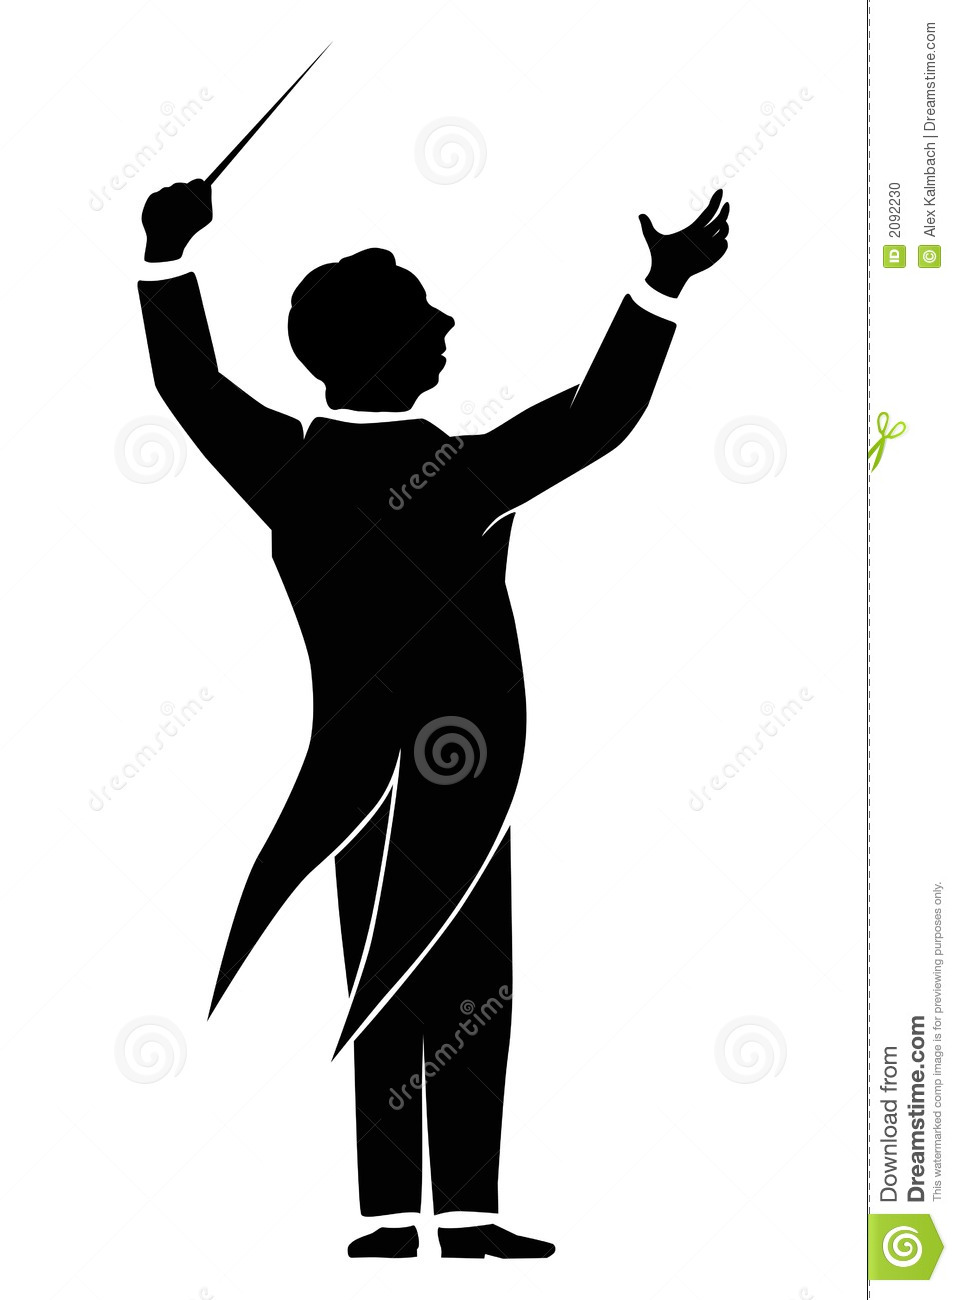 Orchestra Conductor Stock Photo Image 20-Orchestra Conductor Stock Photo Image 2092230-19